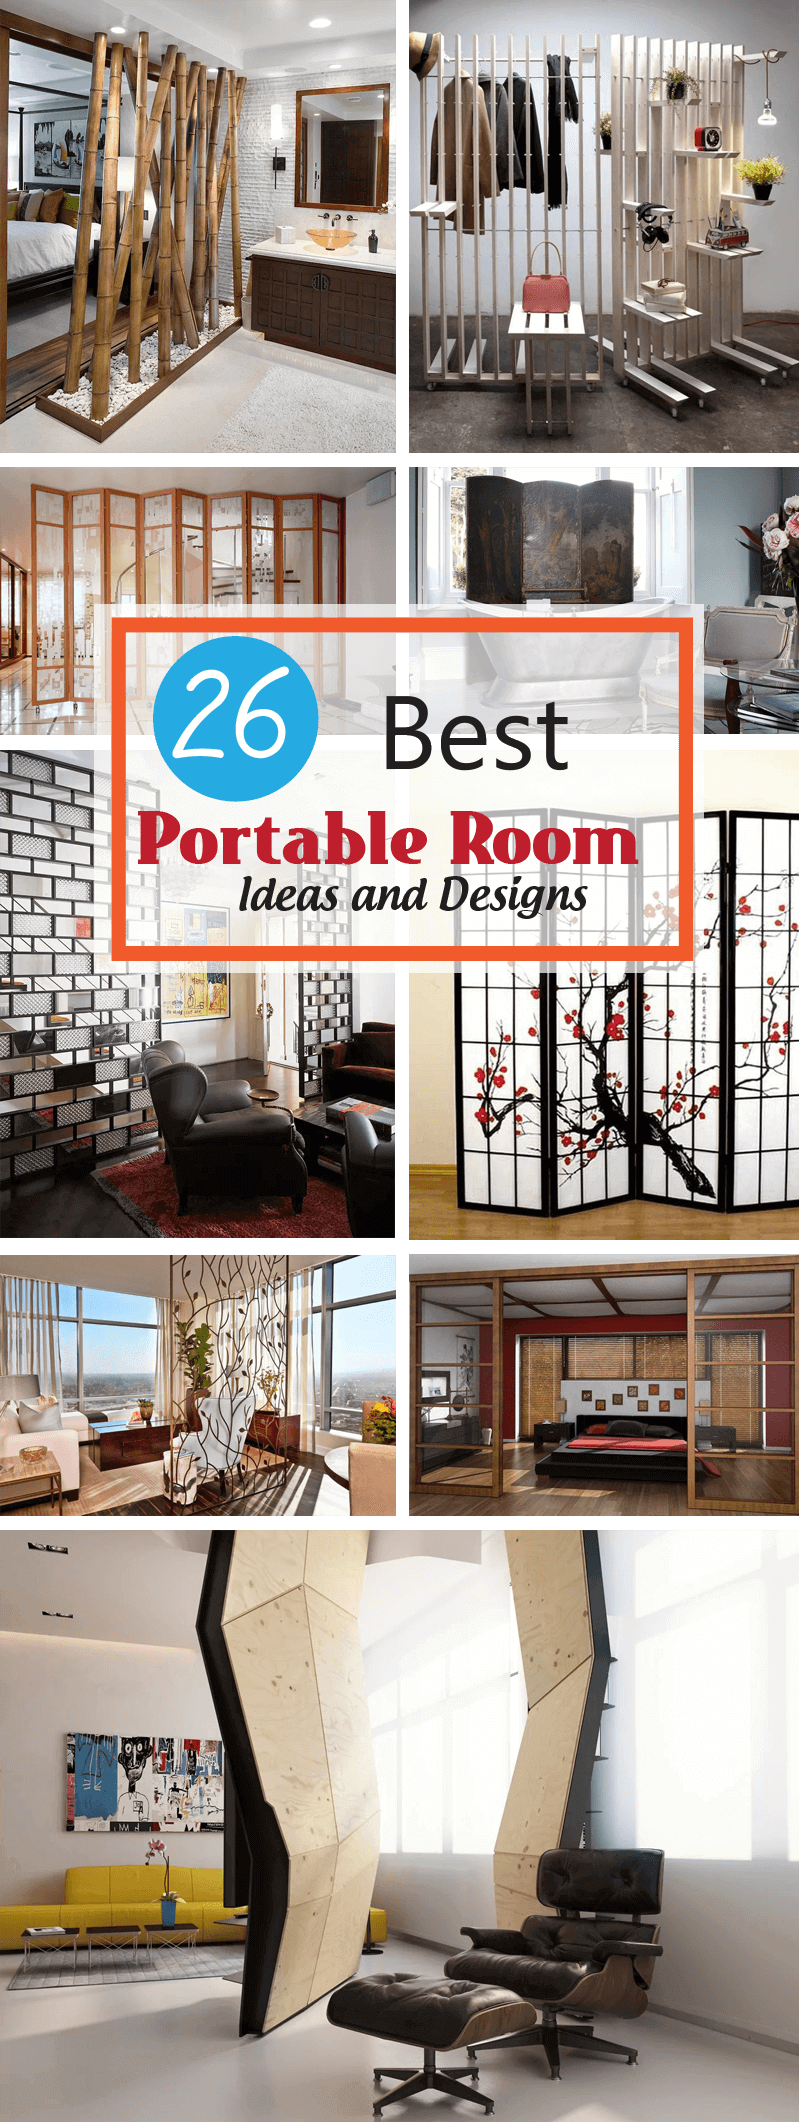 best portable room ideas and designs